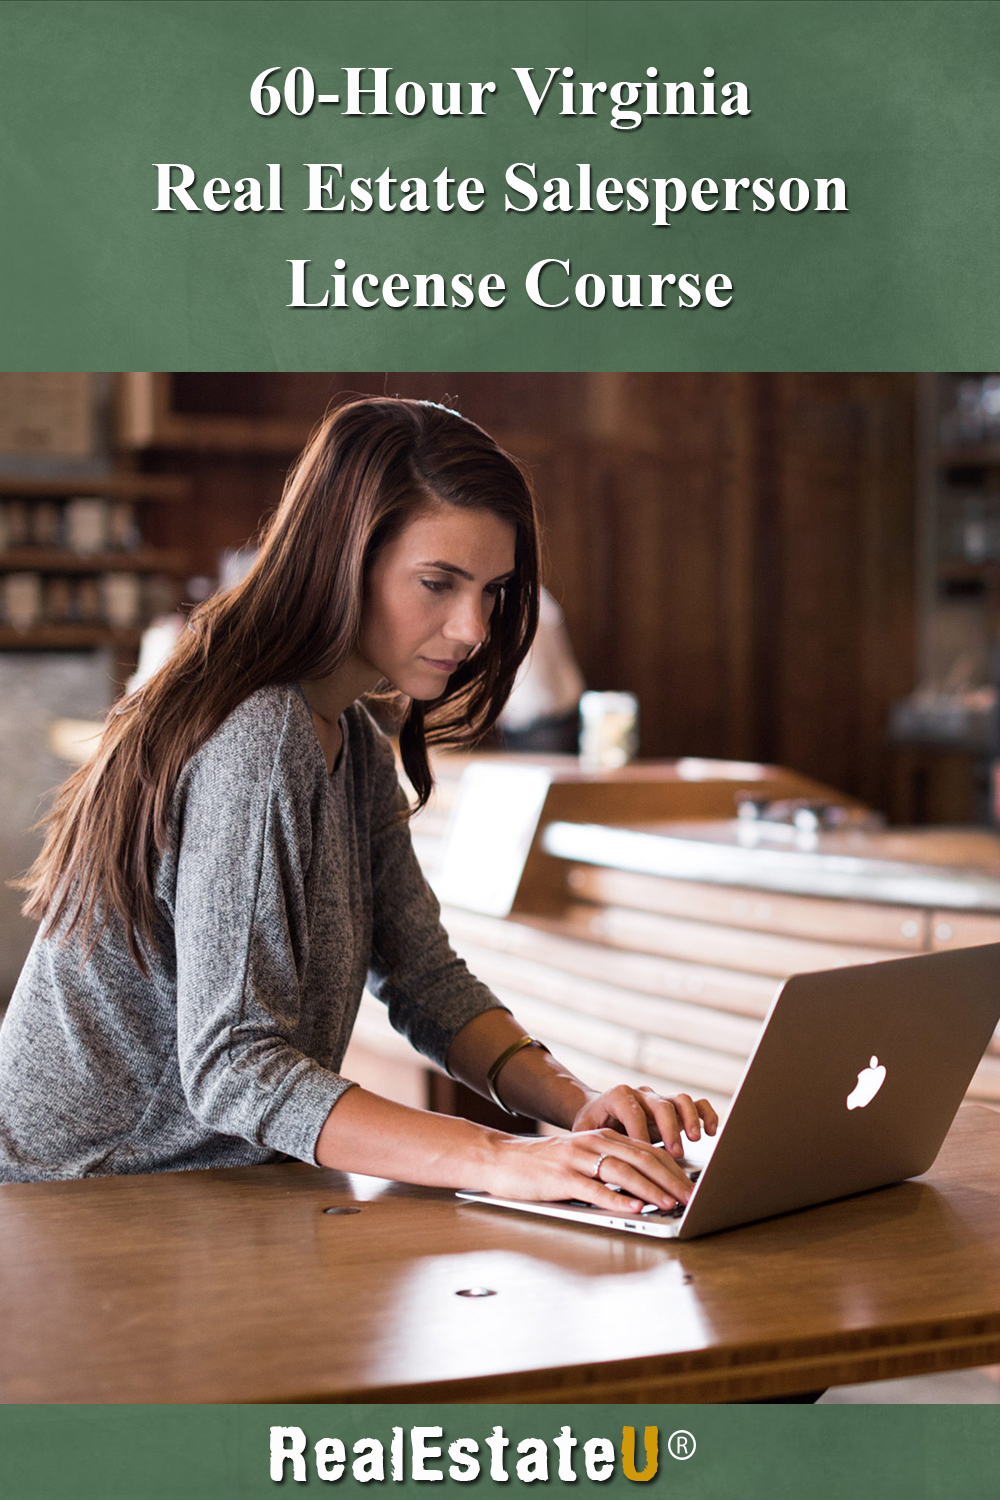 60-Hour Virginia Real Estate Salesperson License Course [Online Code]